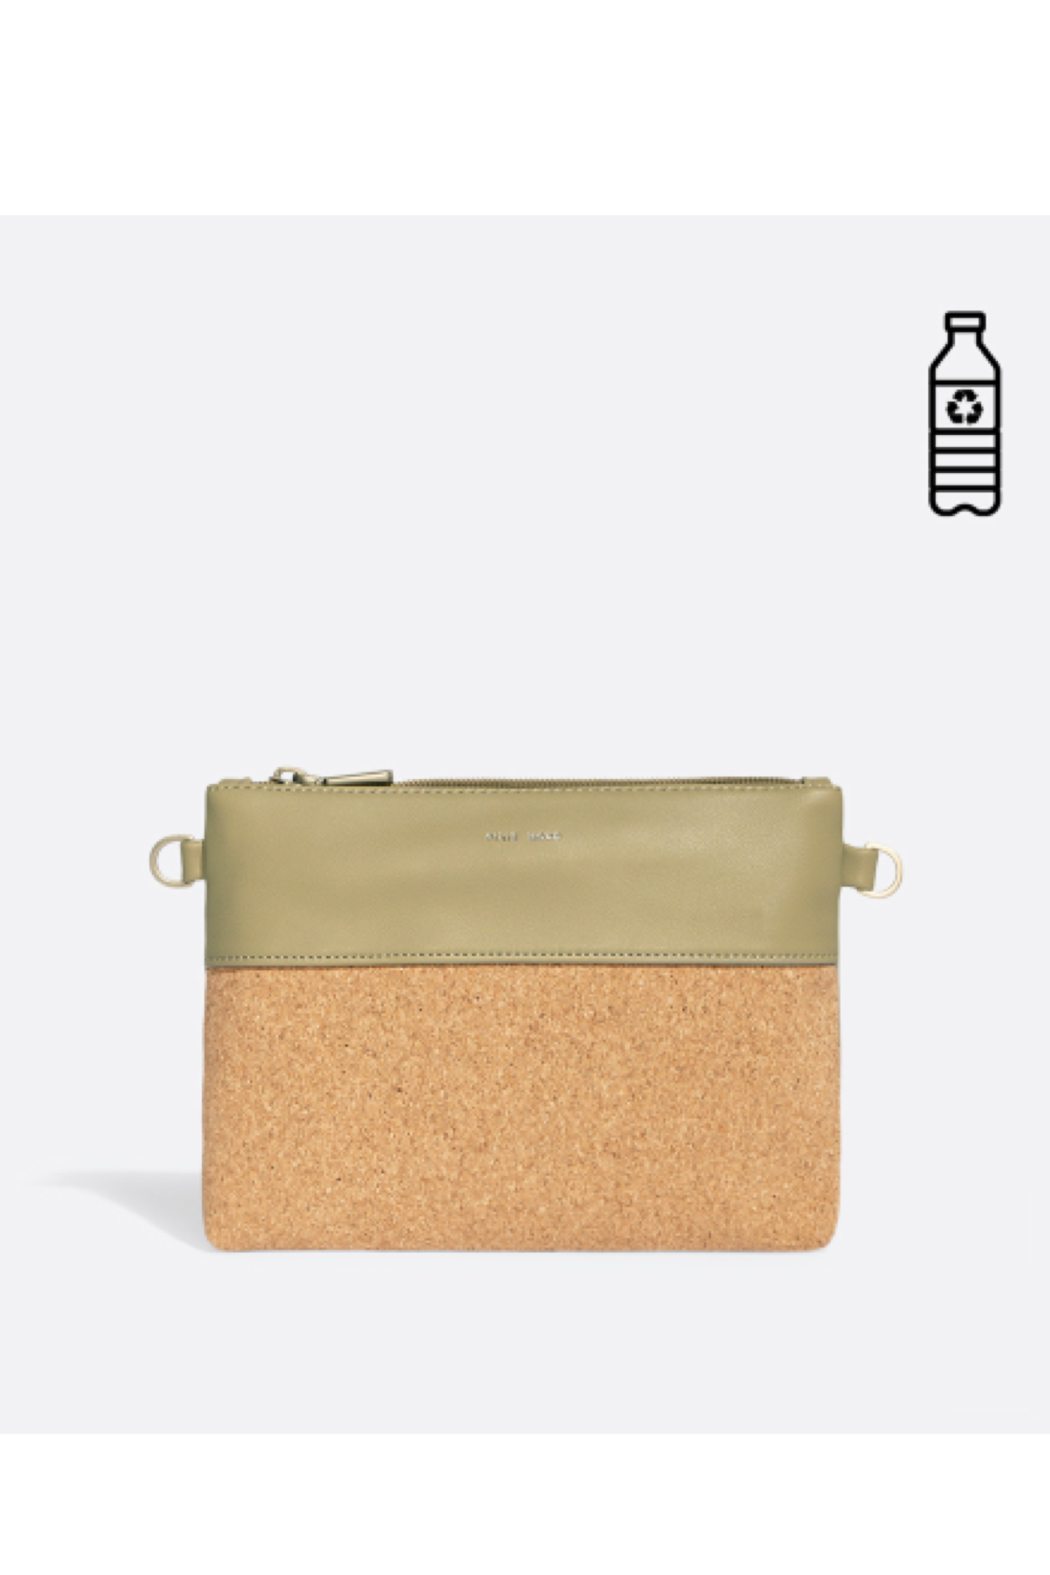 Pixie Mood Nicole Pouch Small – Sage / Cork - Main Image